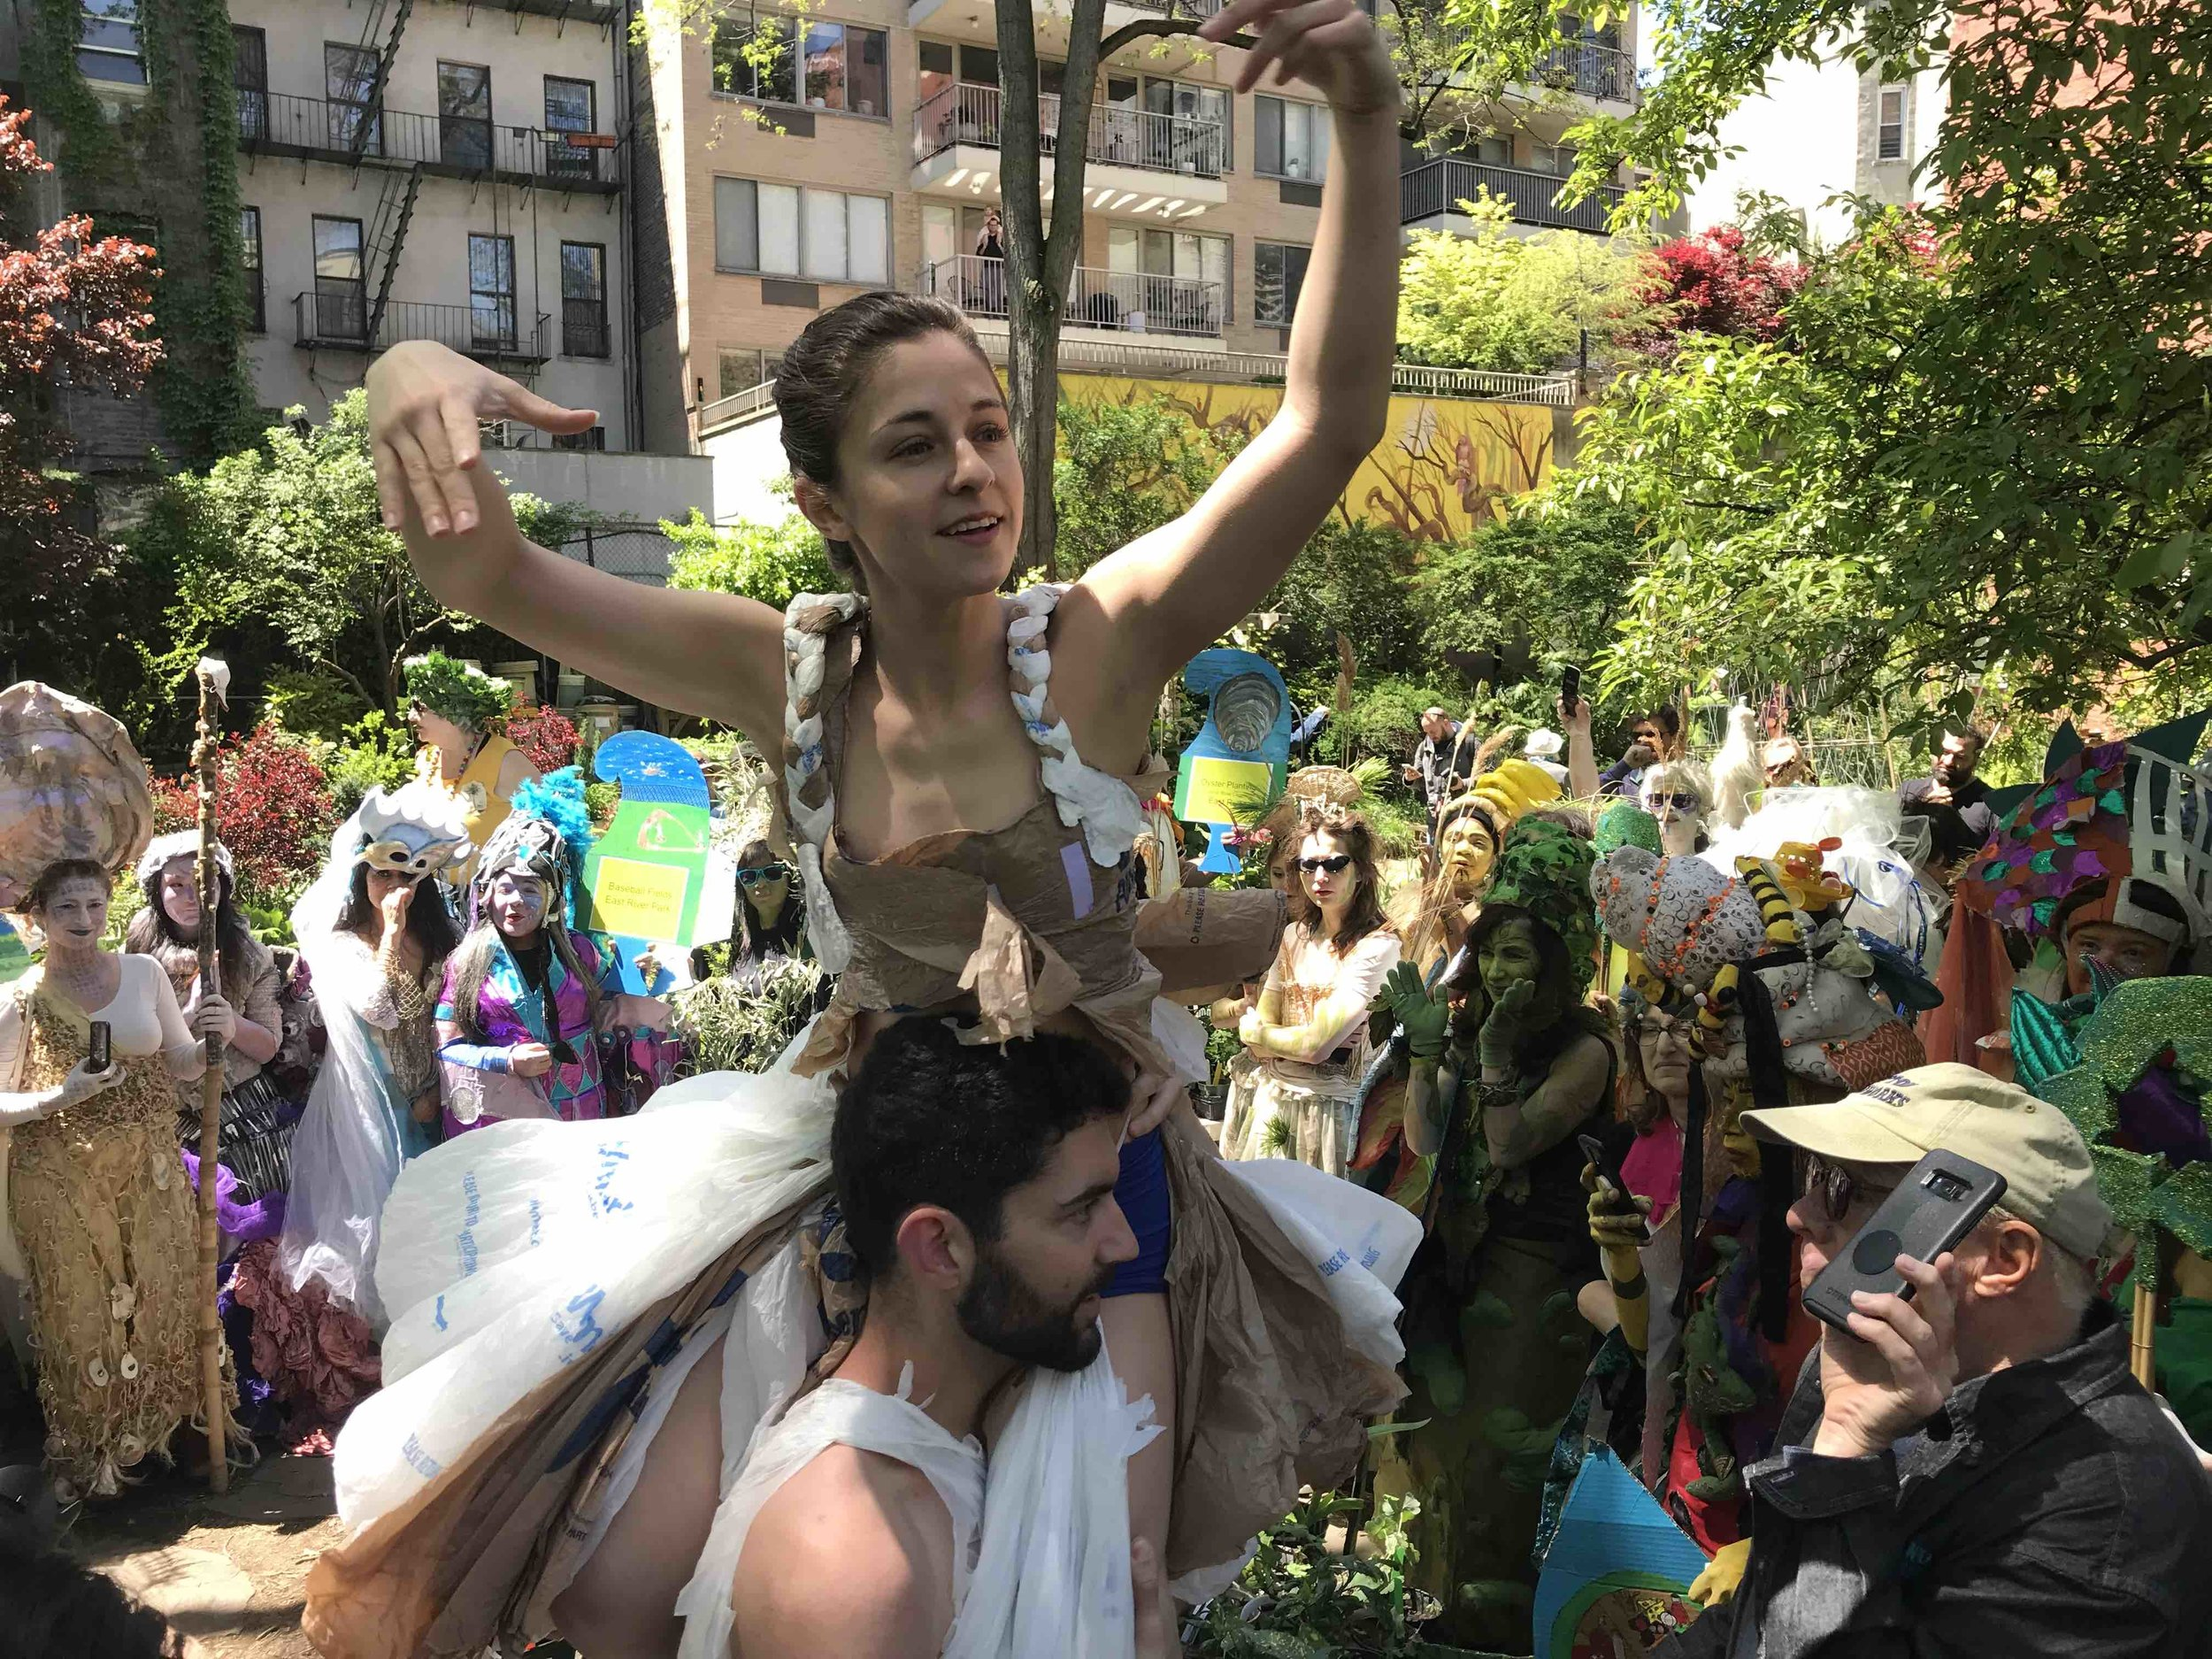 Genna Mergola and Shawn Brush performing at the EcoCity Pageant on the Lower East Side of New York